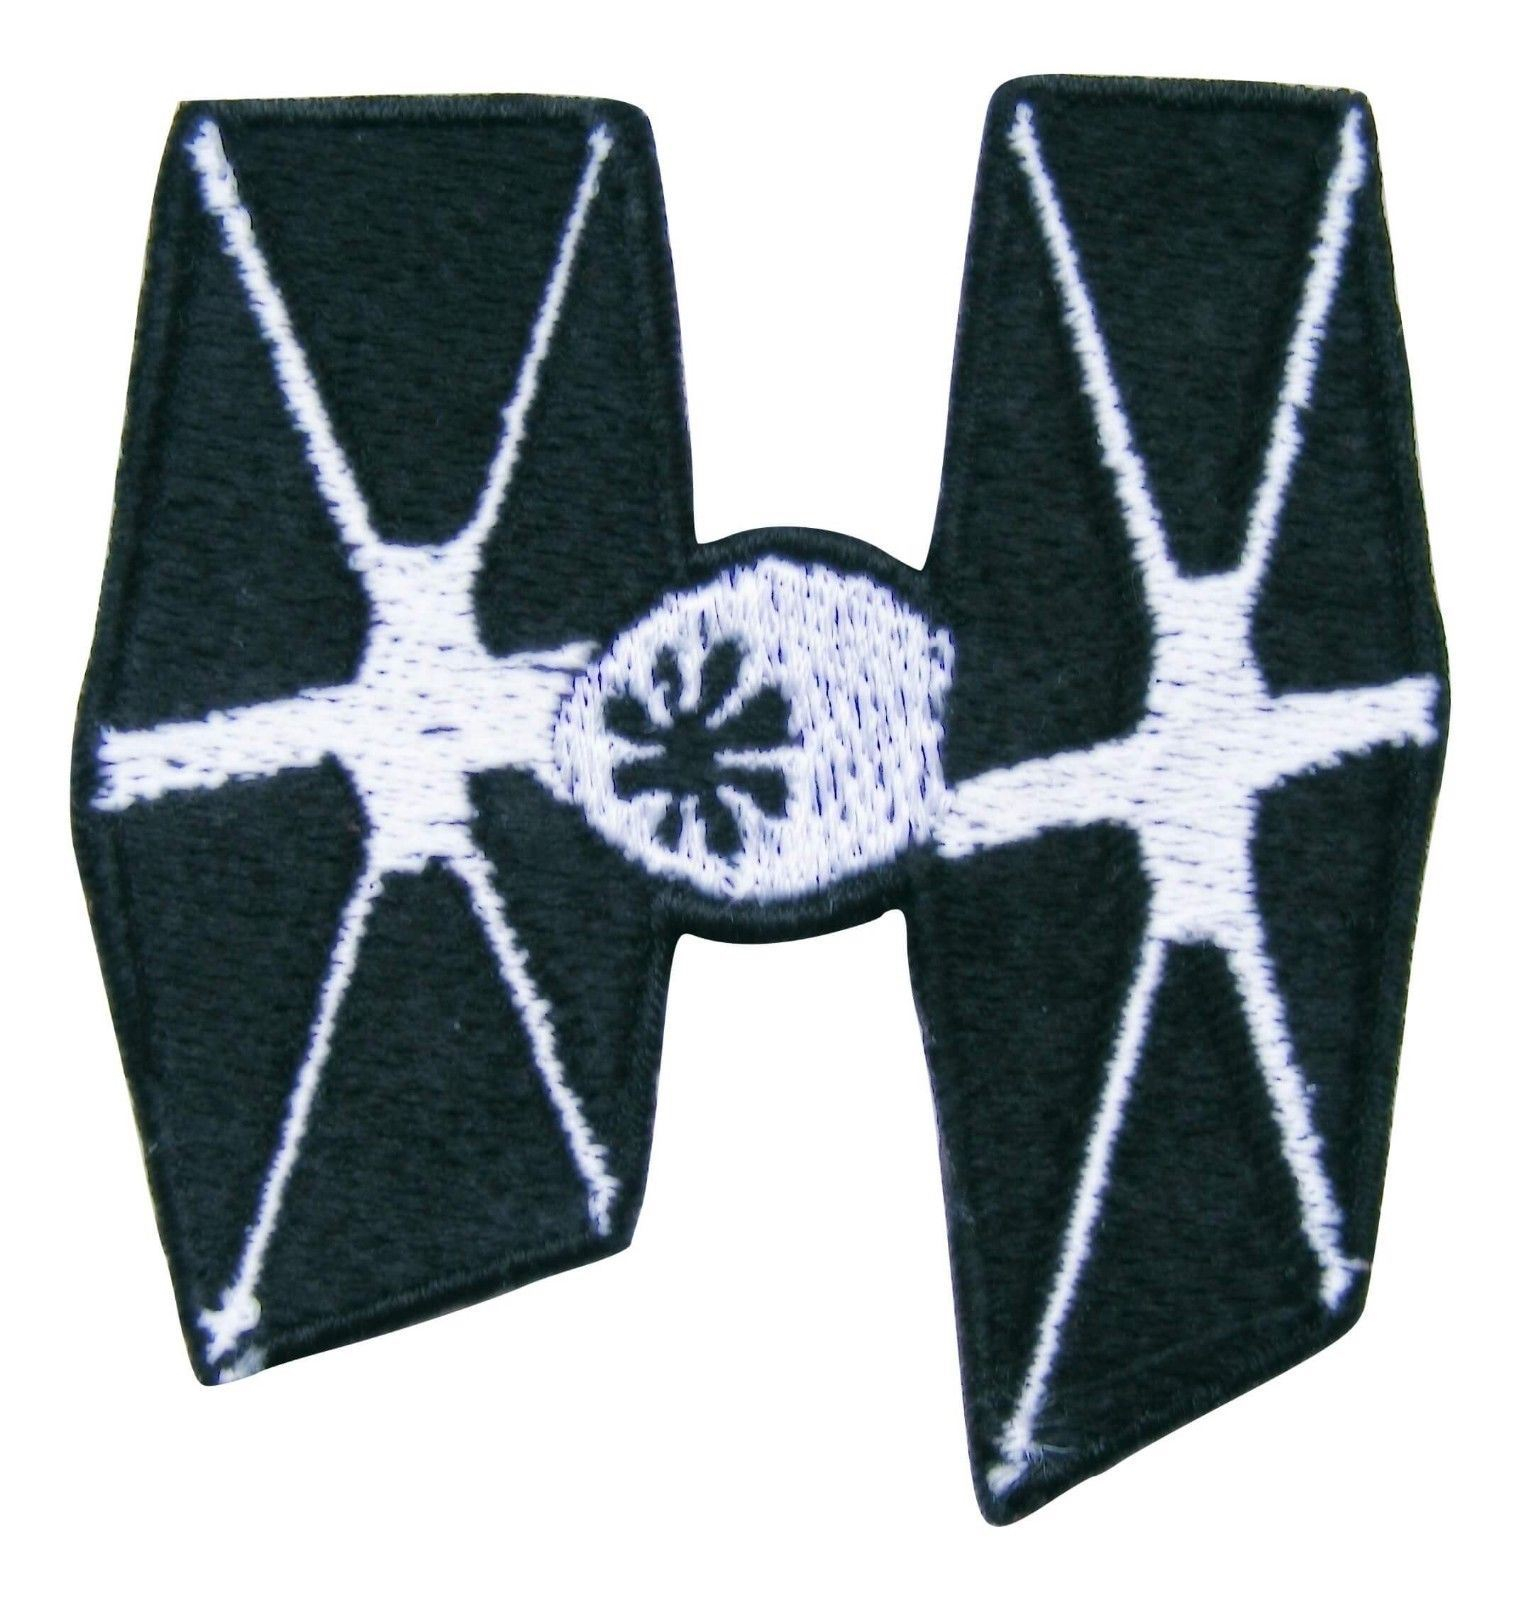 Star Wars Embroidery Pattern Details About Star Wars Tie Fighter Embroidery Iron On Patches Jacket Badge Jeans Applique Bag